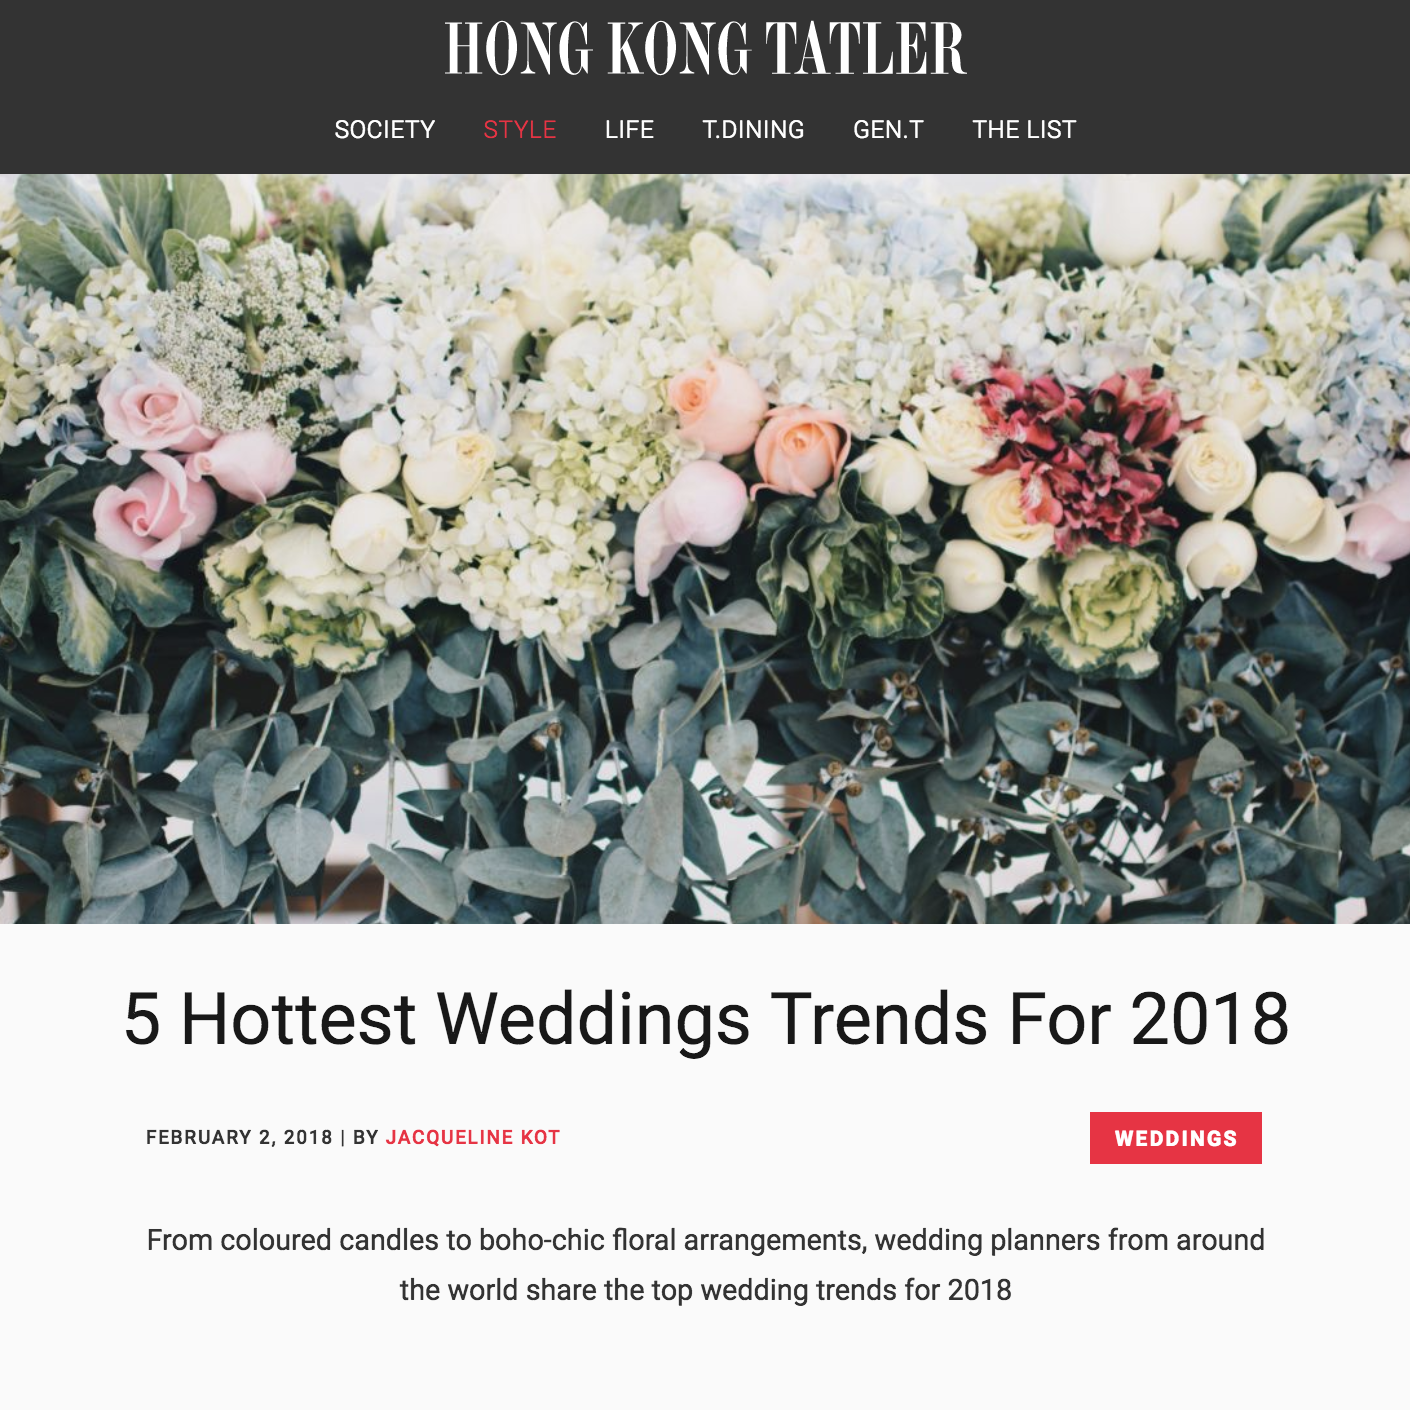 Hong Kong Tatler Ang Weddings and Events.png